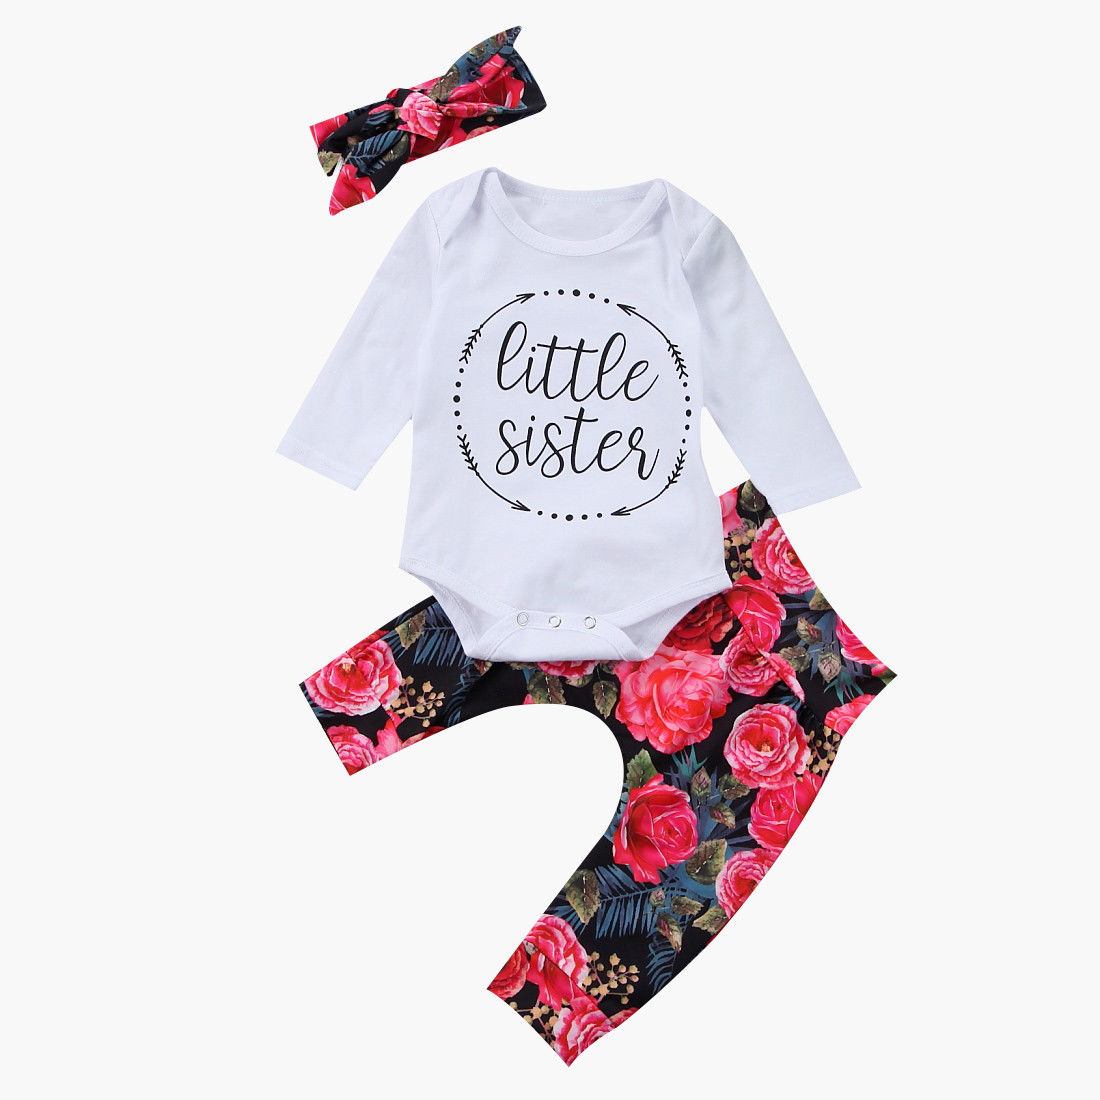 Newborn Toddler Baby Girls Clothes Set Clothing Little Sister Long Sleeve Bodysuits Flower Pants Headband Girl Outfits 3Pcs infant tops pants love pattern headband baby girl outfit set clothing 3pcs kid children baby girls clothes long sleeve